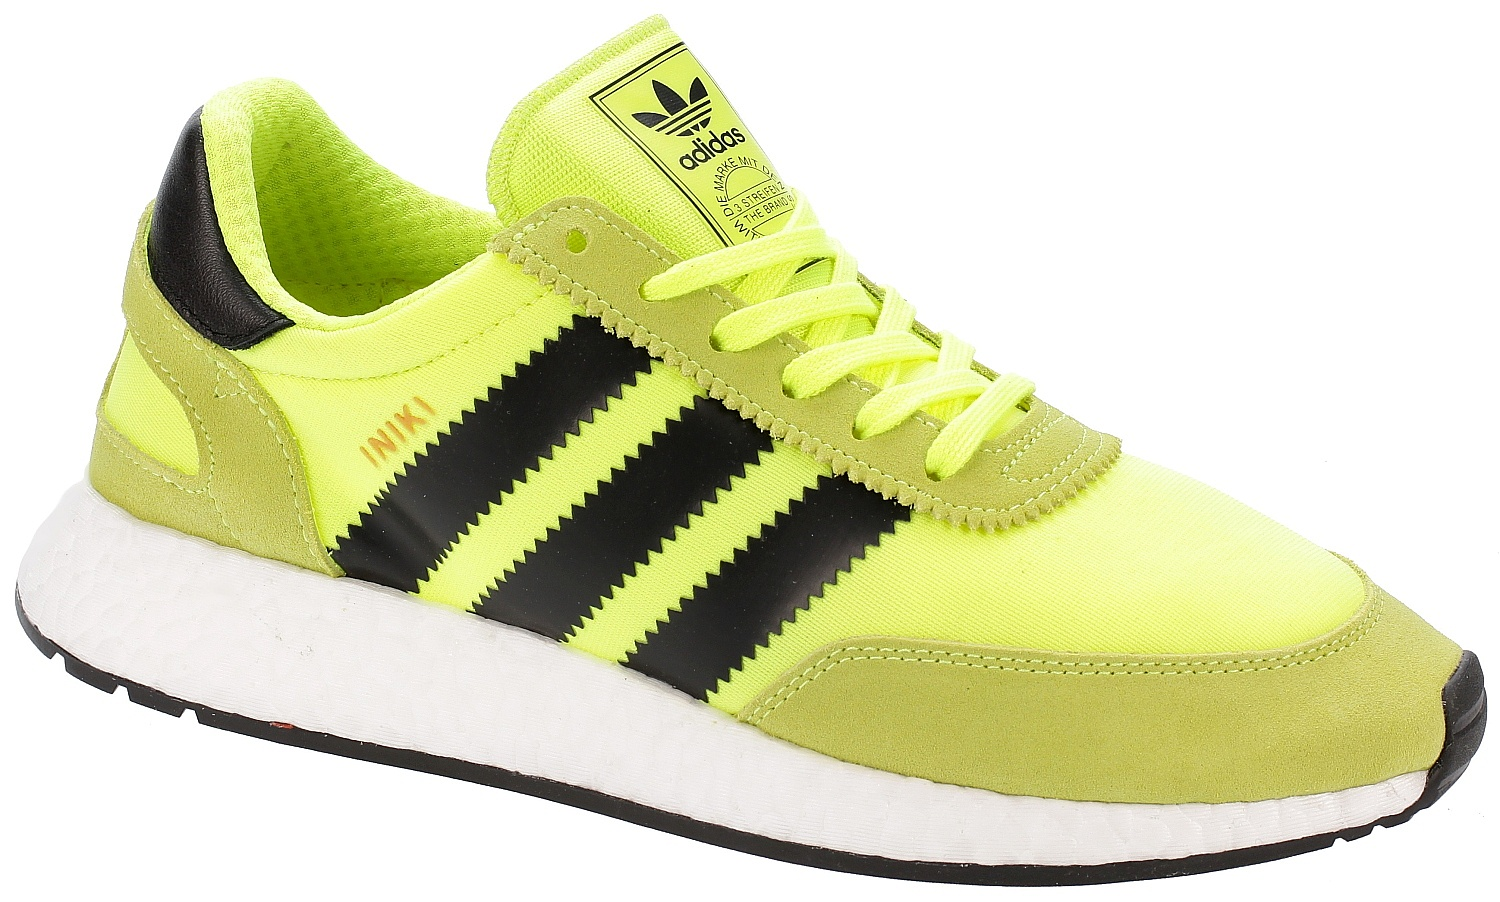 Runner >> Schuhe adidas Originals Iniki Runner - Solar Yellow/Core Black/White - Snowboard shop, skateshop ...